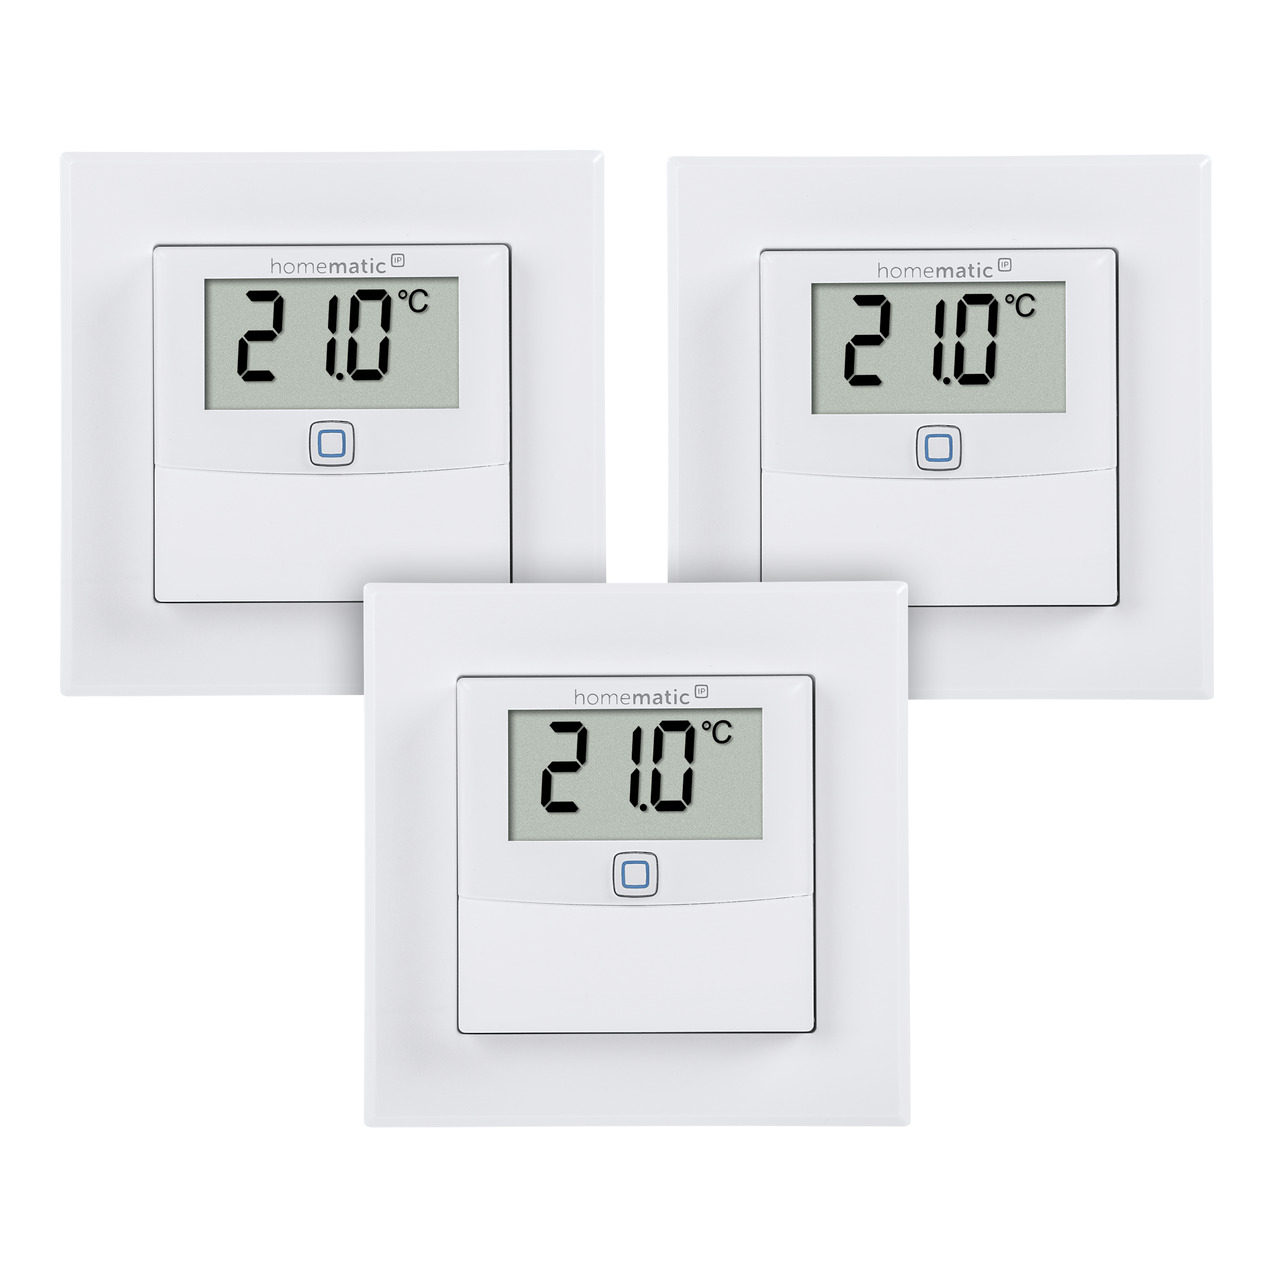 Homematic IP Smart Home 3er Set Temperatur- und Luftfeuchtigkeitssensor mit Display- innen